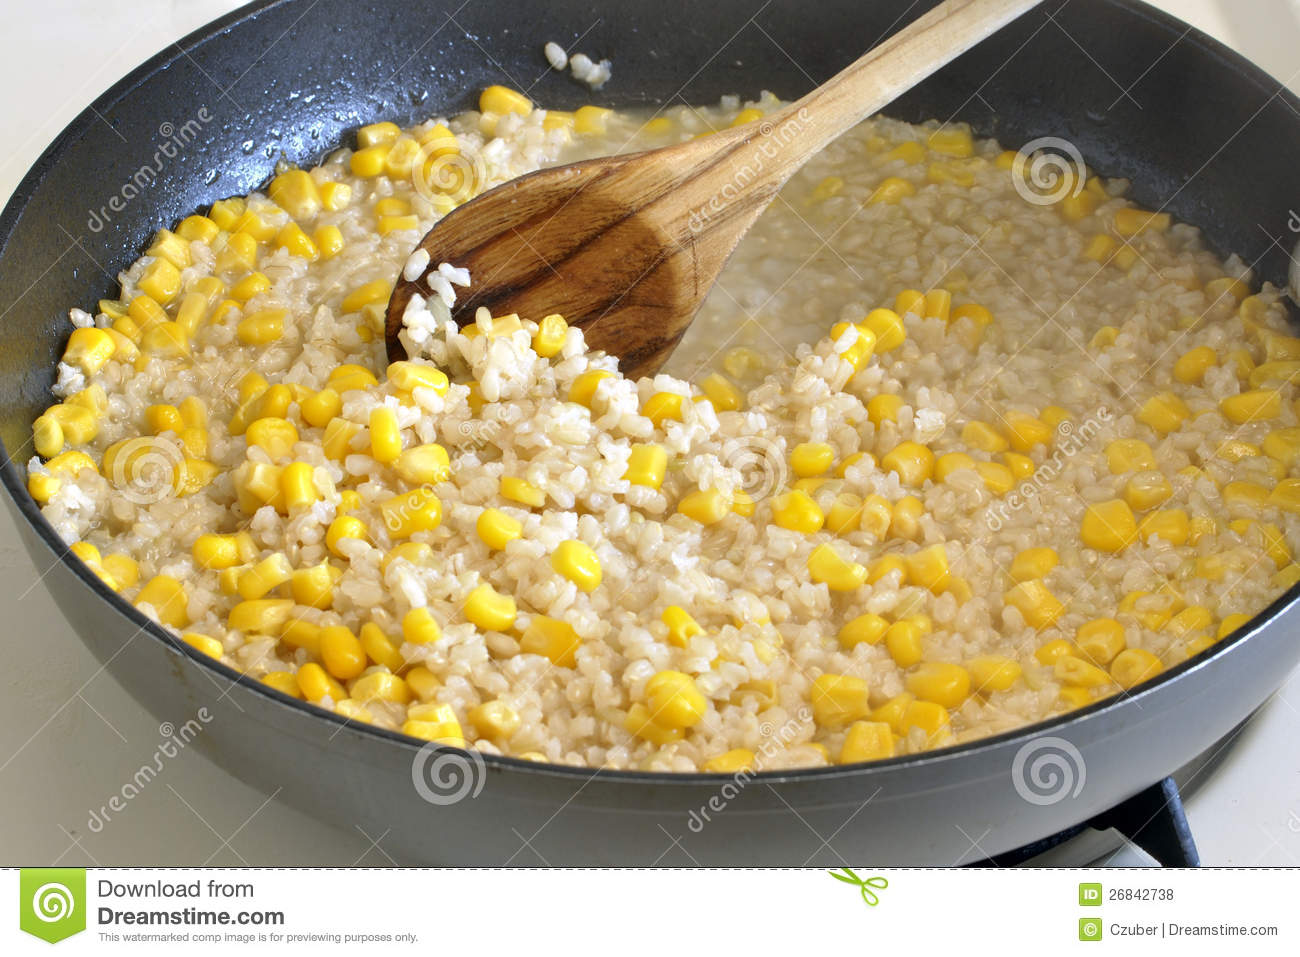 Cooking rice and corn stock photo image of vegetarian 26842738 royalty free stock photo download cooking rice and corn ccuart Choice Image